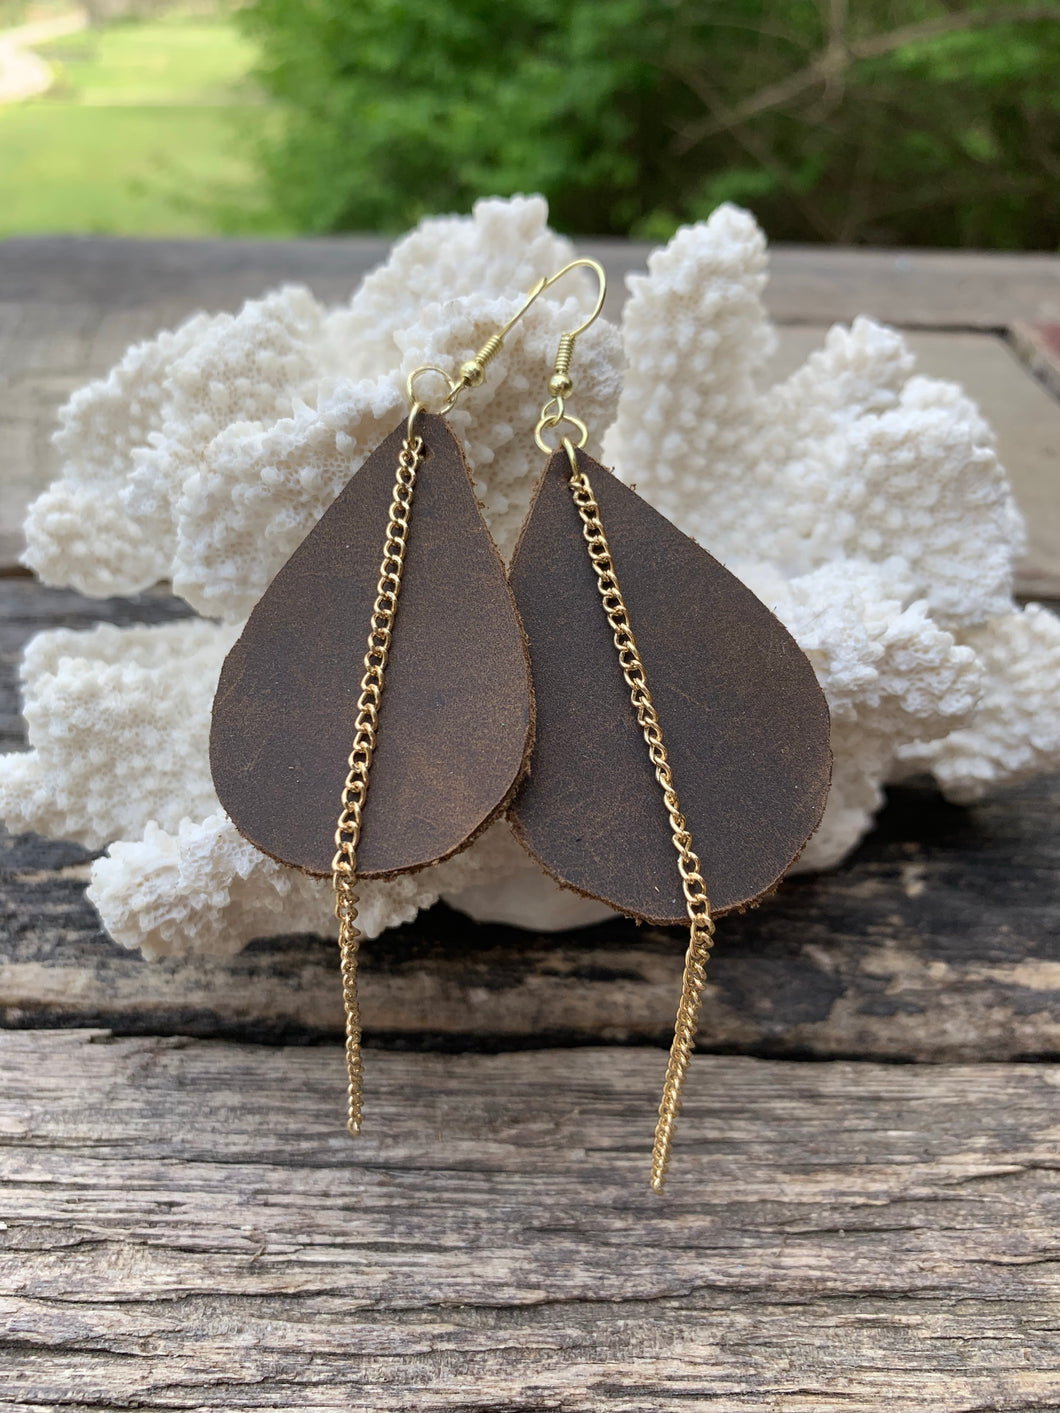 Rustic Leather Earrings with Gold Chain Accent